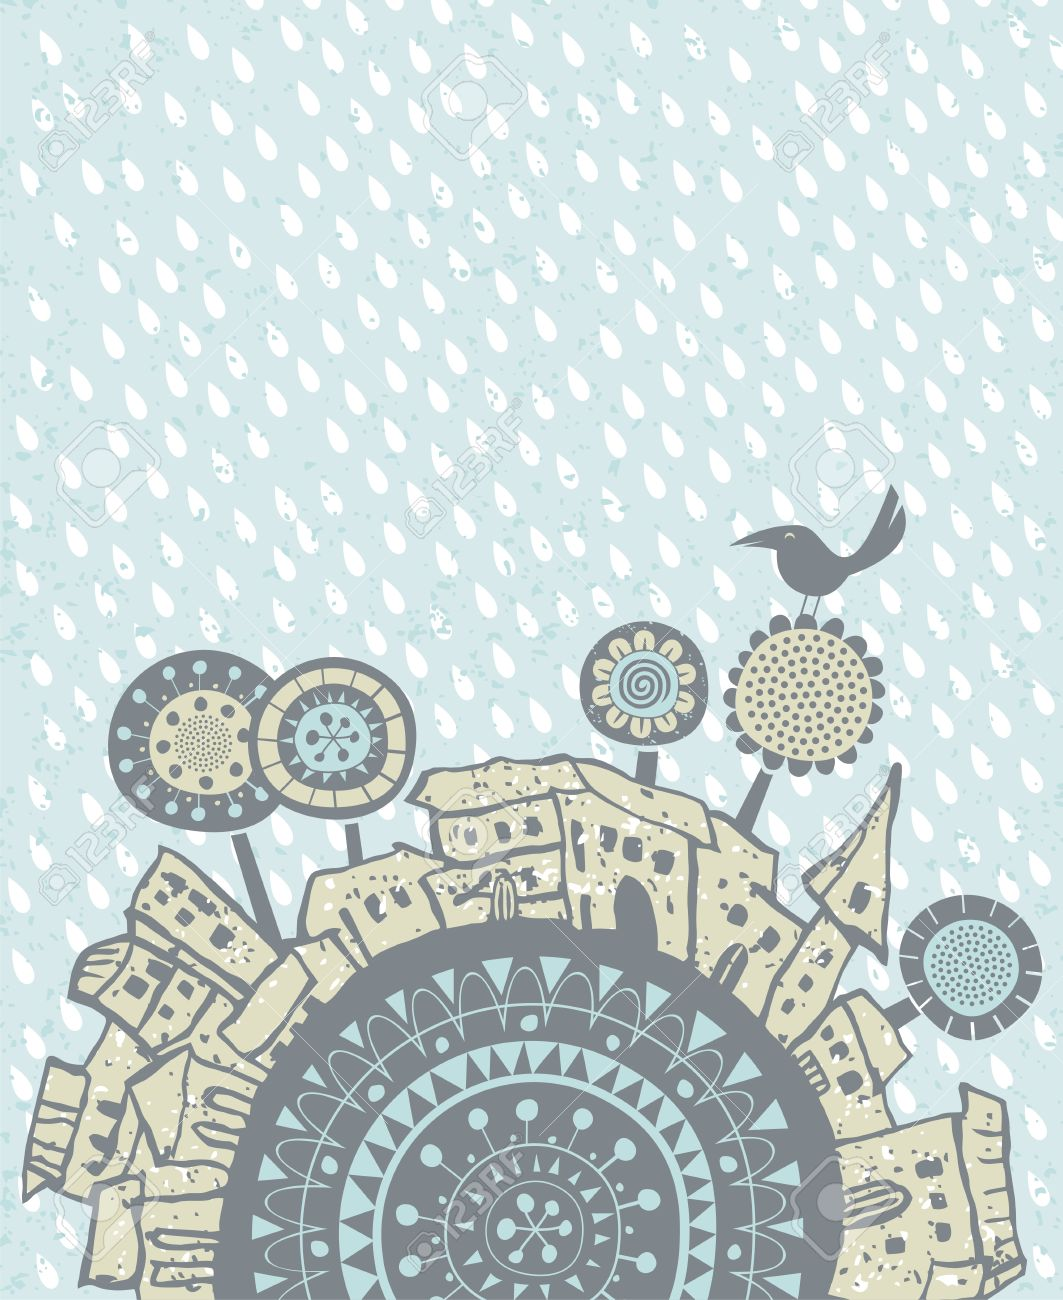 decorative illustration with falling rain over old city royalty free